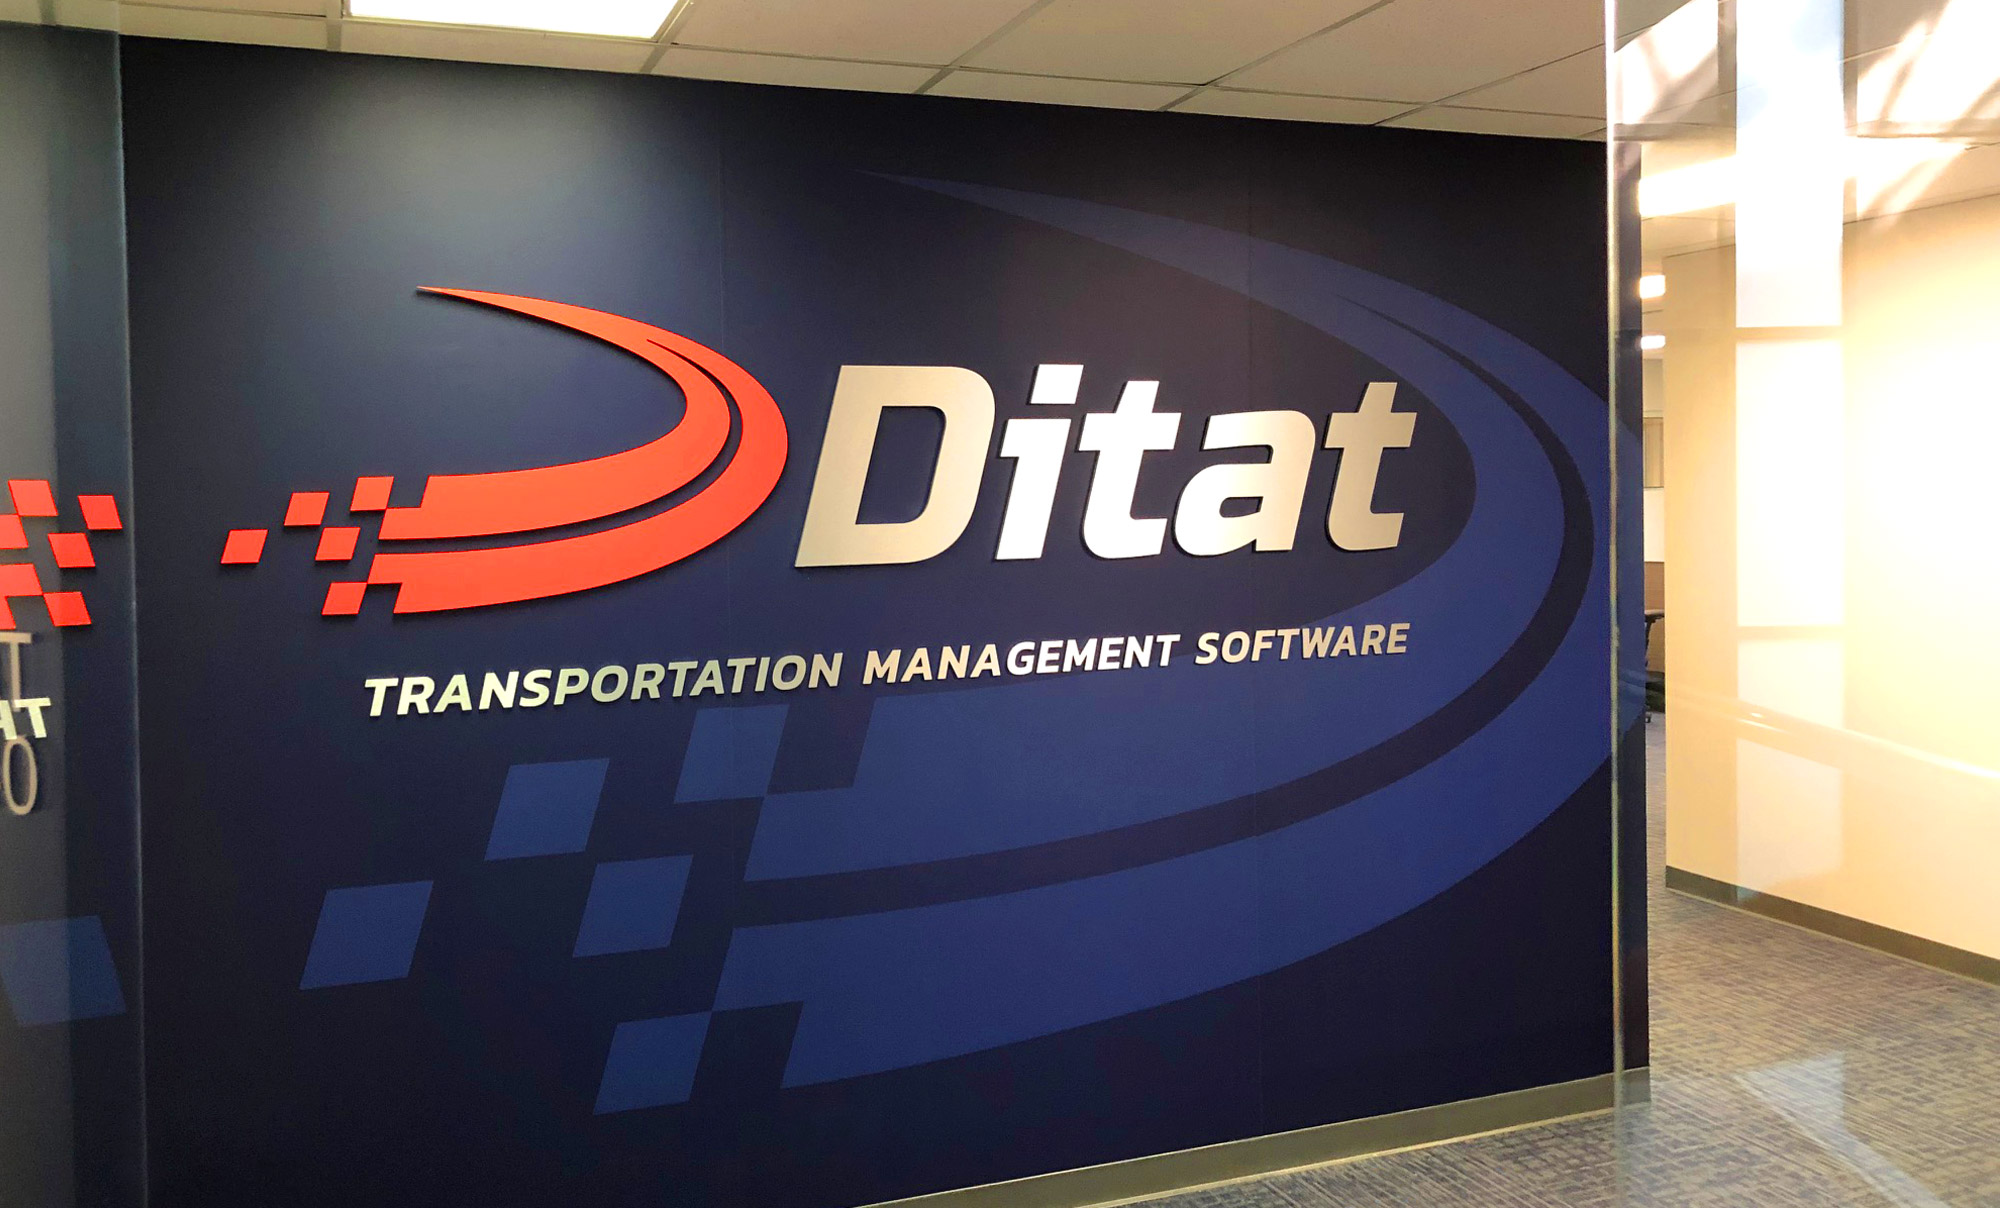 Ditat sign design, office entrance